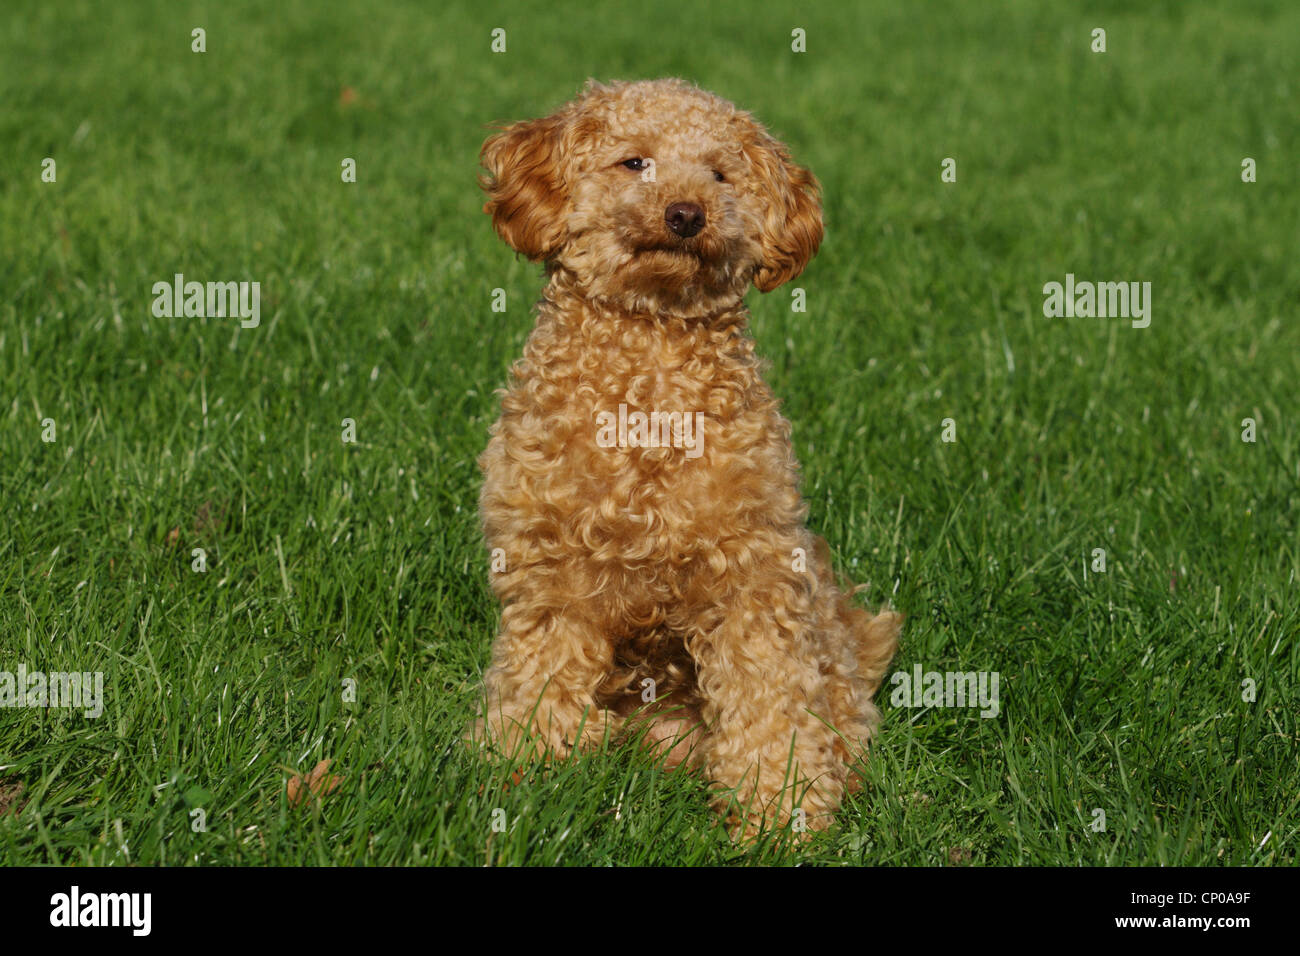 Miniature Poodle (Canis lupus f. familiaris), ten month old apricot-coloured toy poodle sitting in meadow - Stock Image